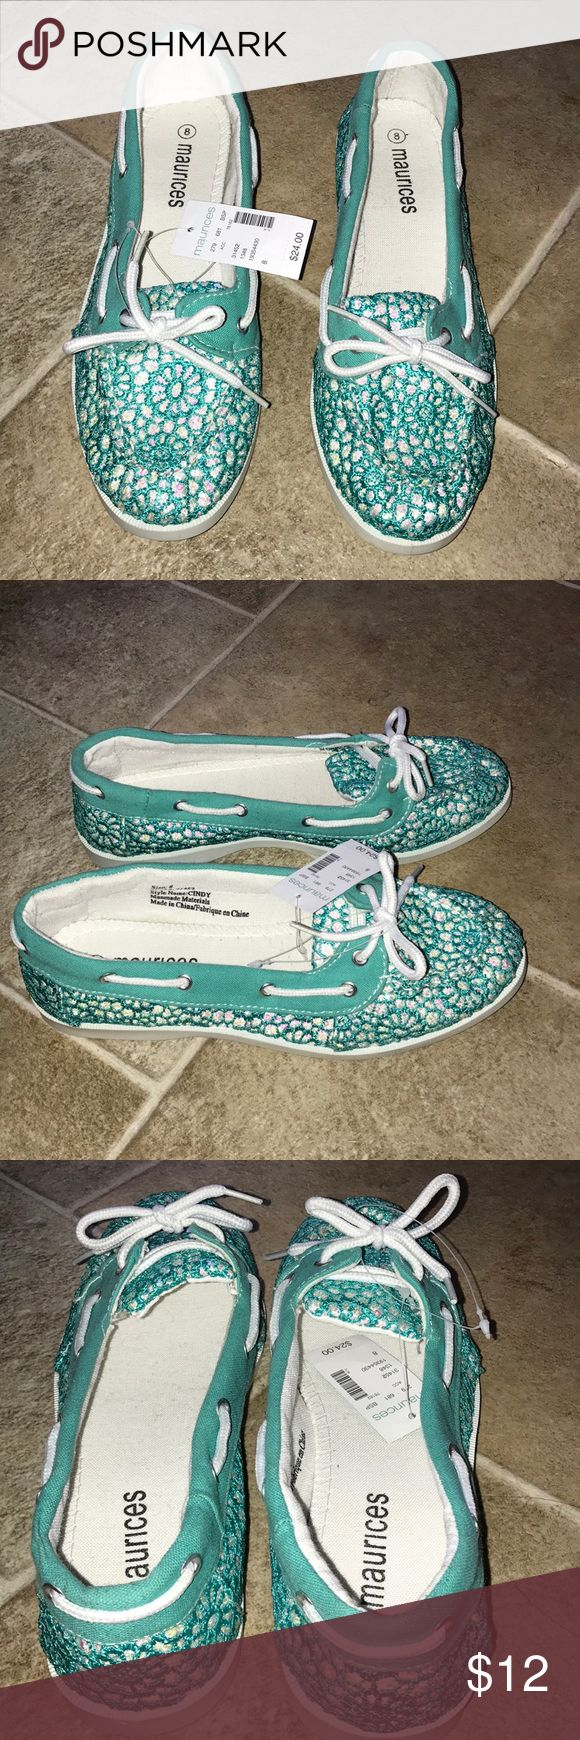 Shoes New, size 8, jade green in color, from Maurices Maurices Shoes